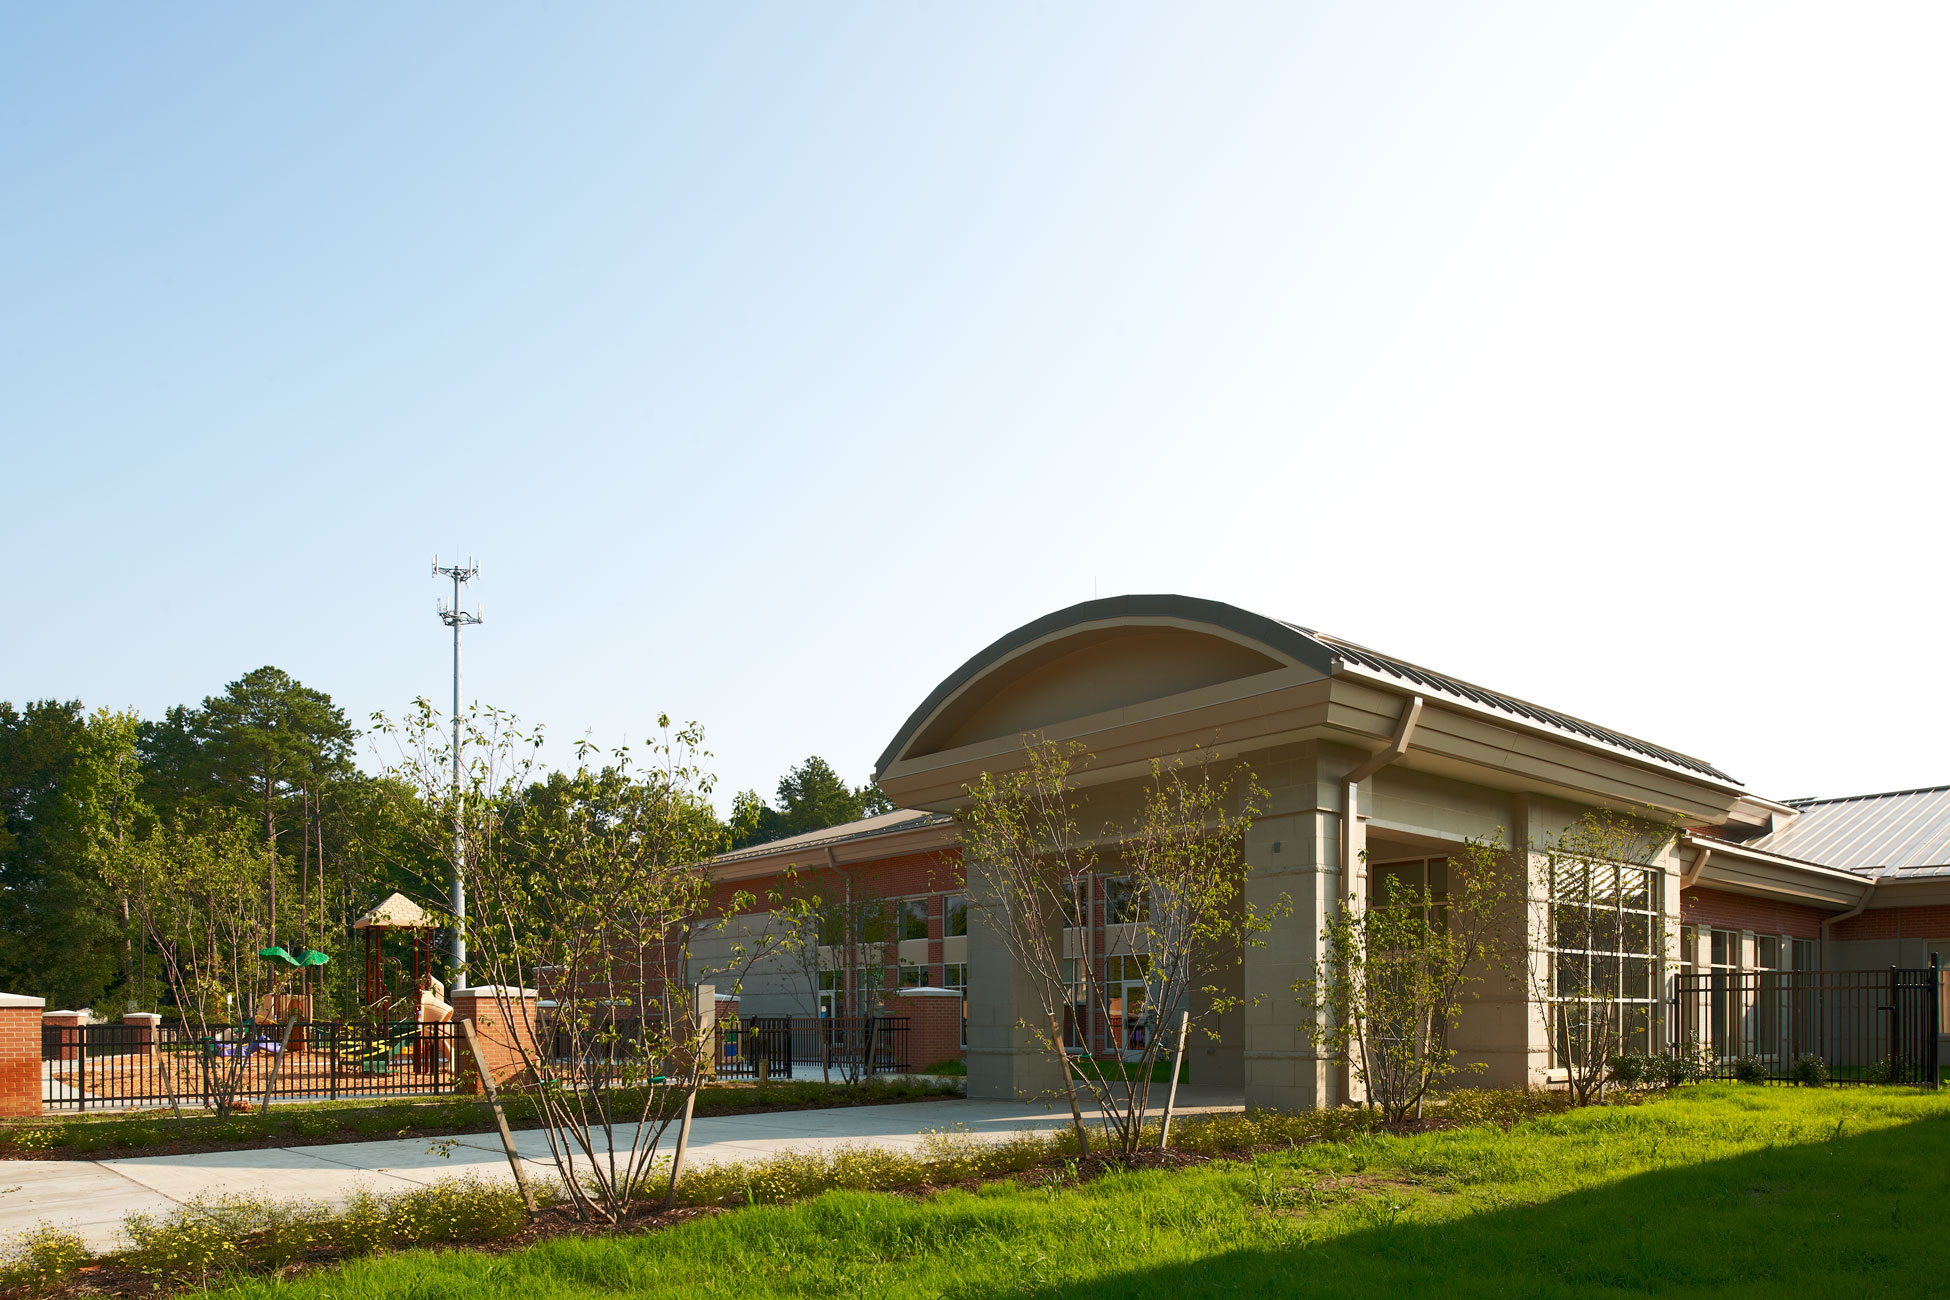 Kimley-Horn provided infrastructure planning and site design services to Hampton Public Schools for the construction of two middle/elementary schools.